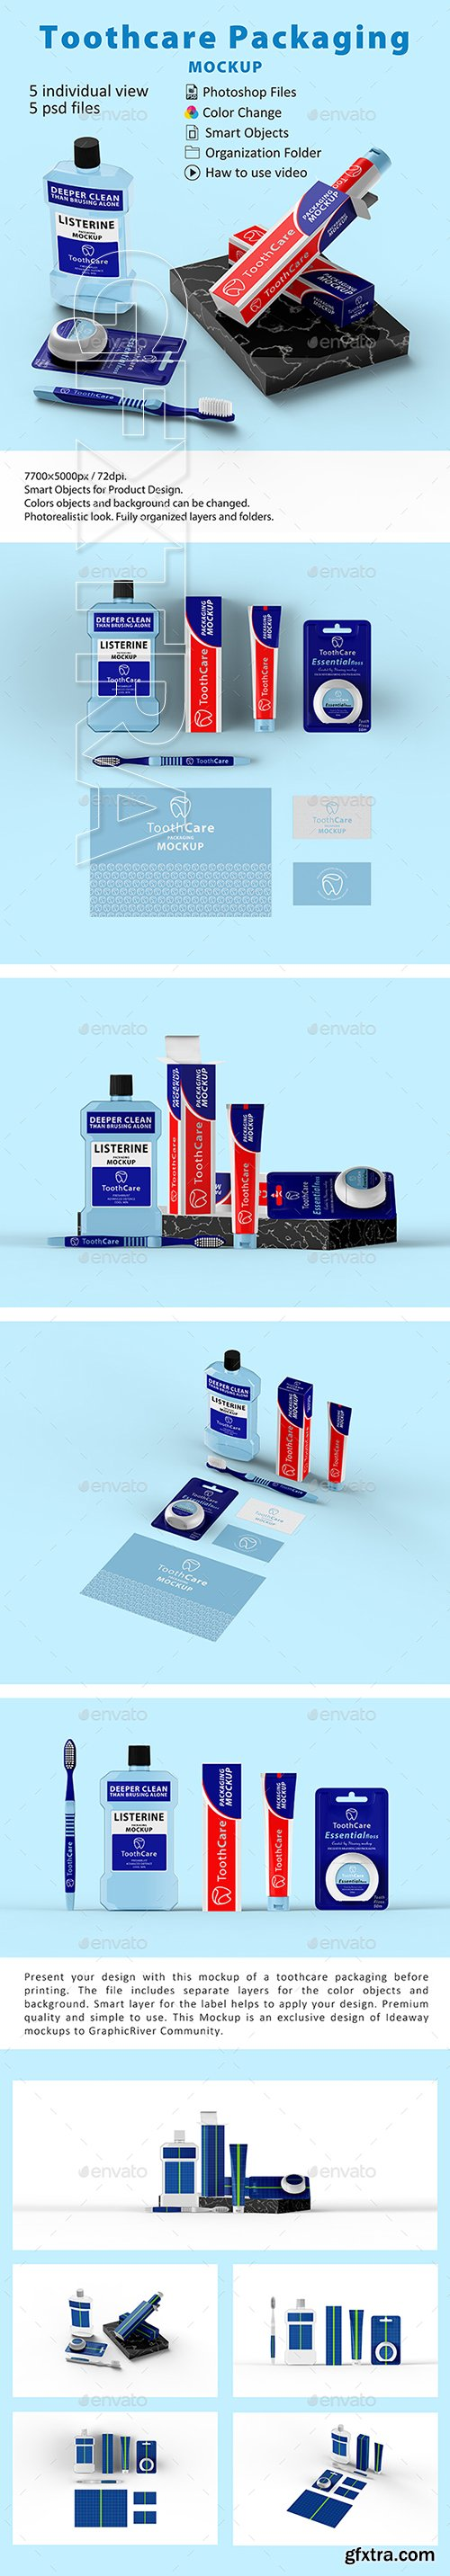 GraphicRiver - Toothcare Packaging Mockup 22723216